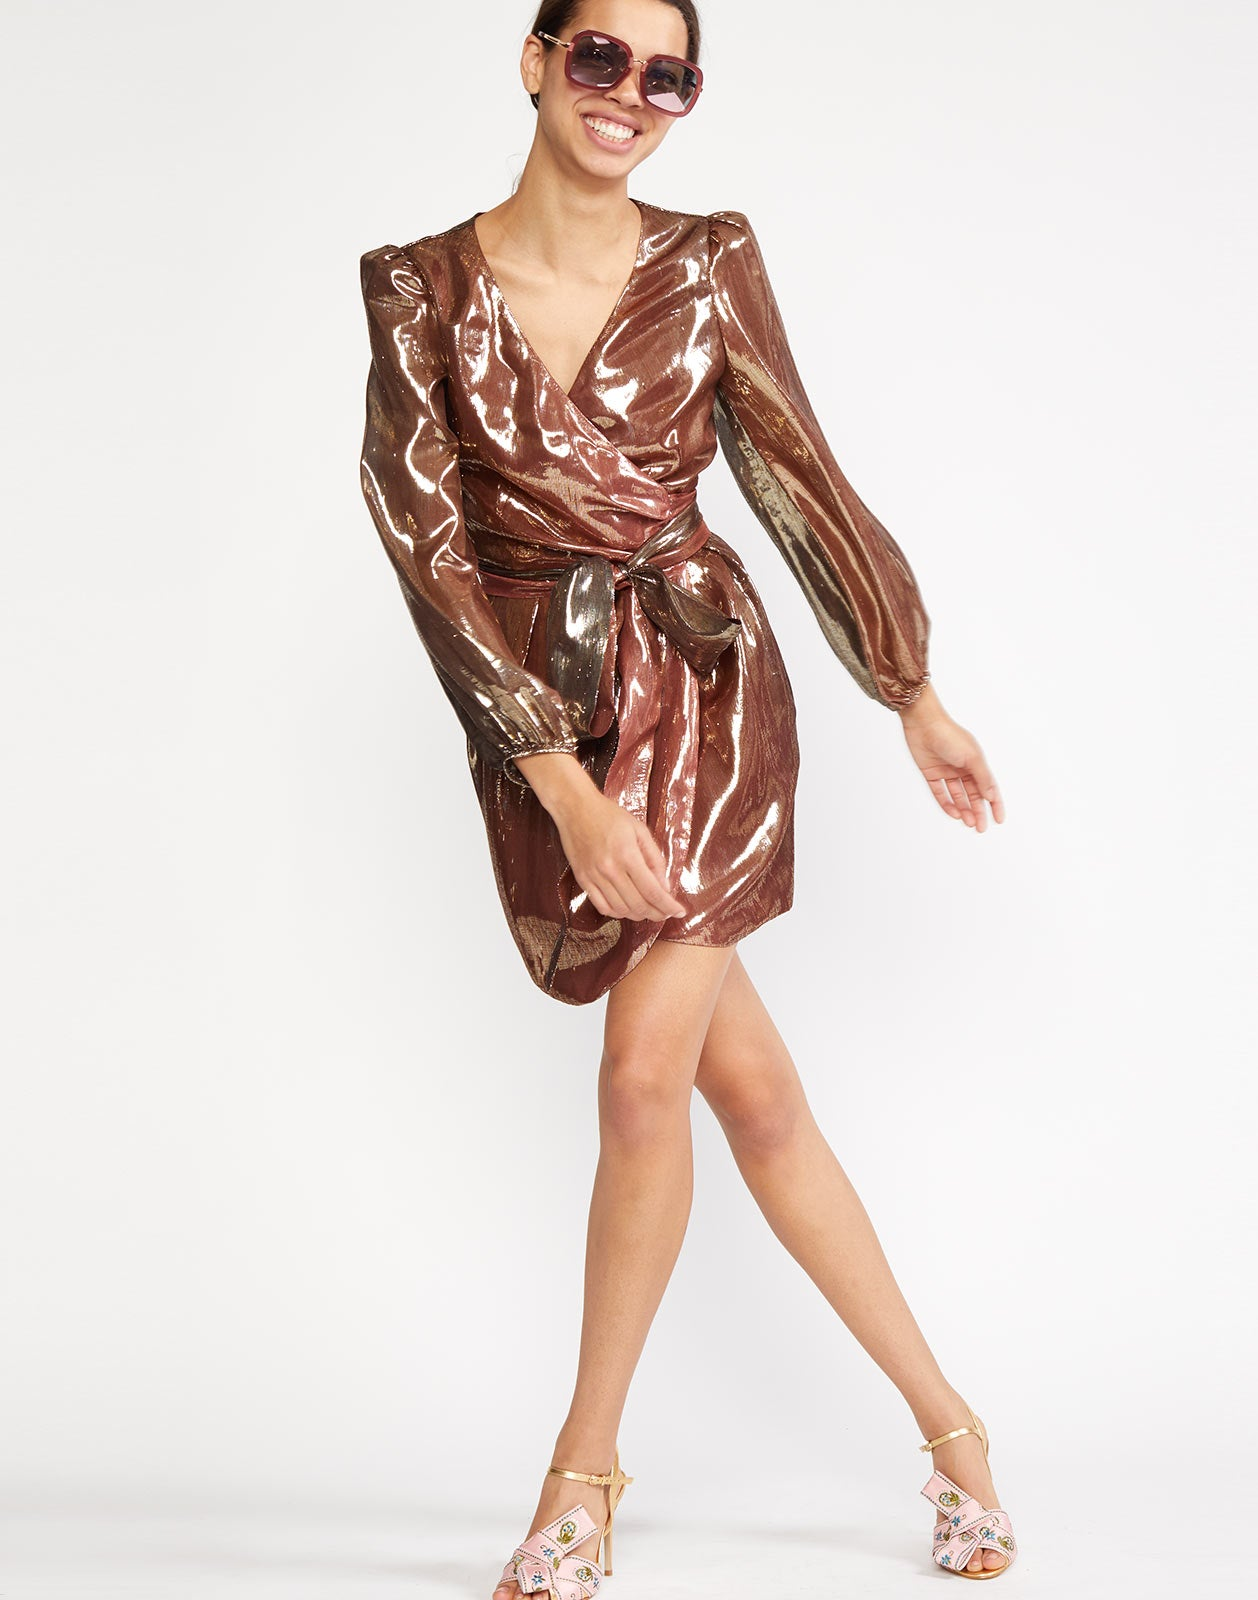 Bronze metallic lamé wrap dress with long sleeve shirred shoulder.